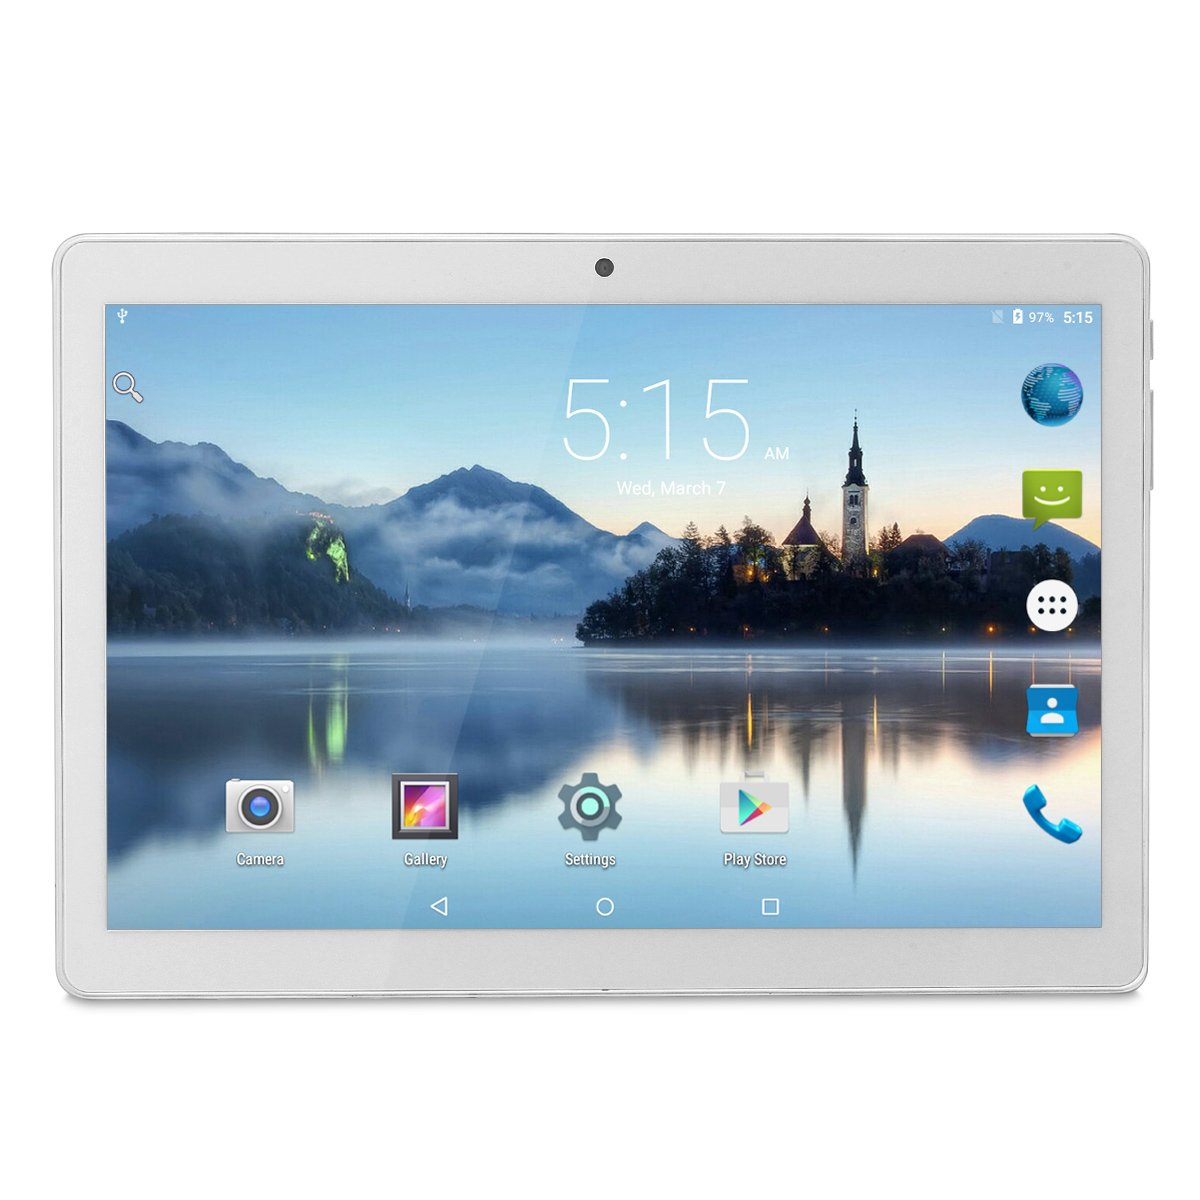 Tablet Android 10 Inch Unlocked 3G Phone, Tablets PC Dual SIM Card Slots 1GB+16GB Quad-Core IPS 1280x800, WiFi Bluetooth GPS Dual Camera Phablet,Silver